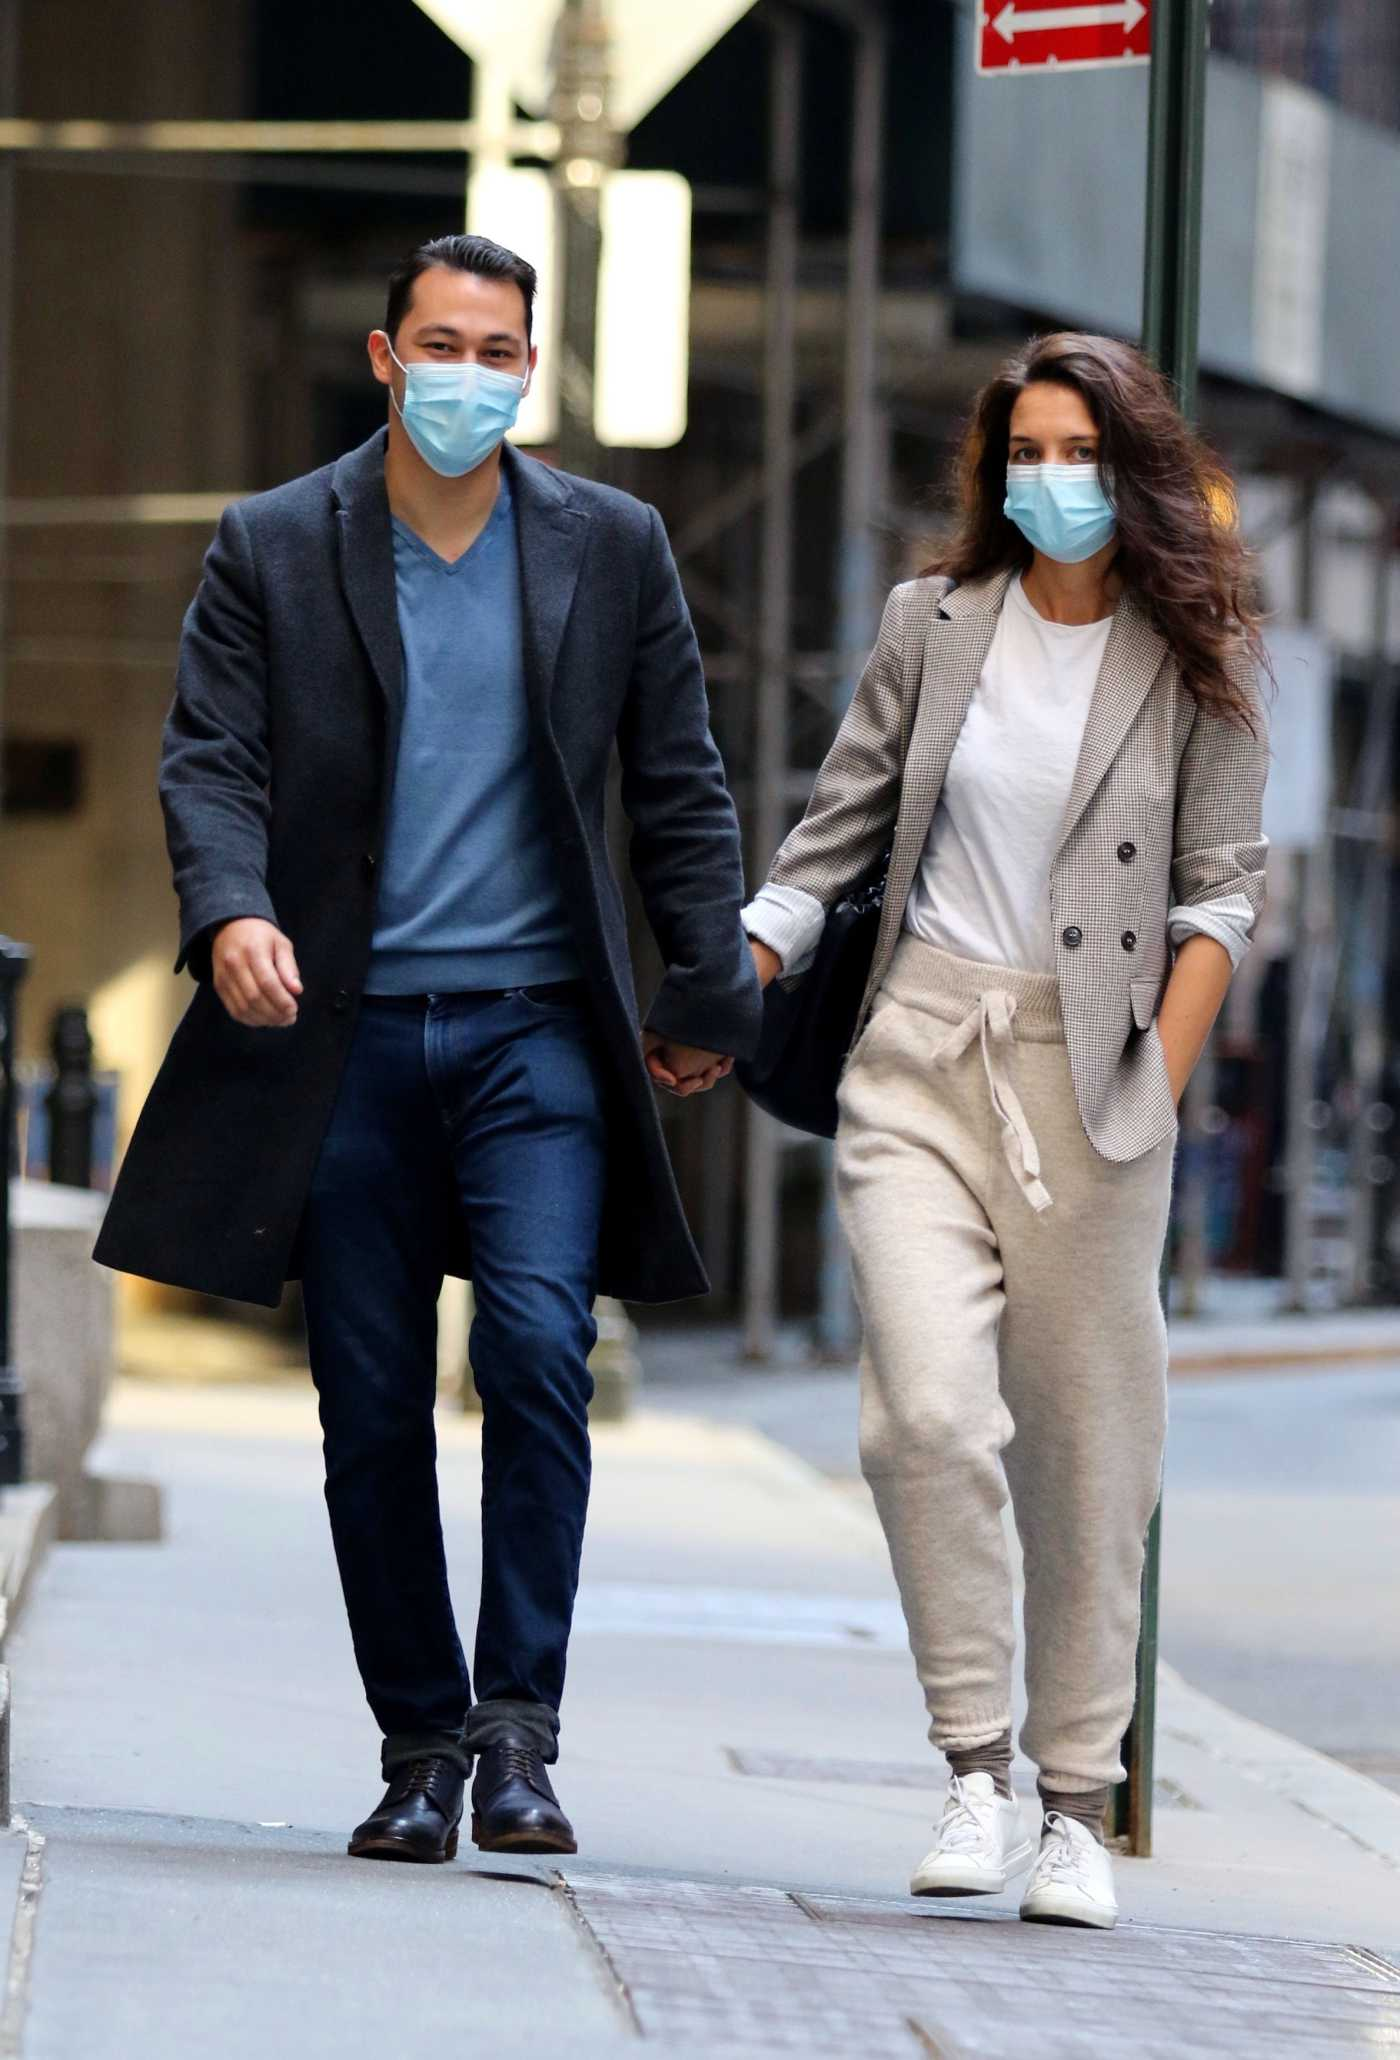 Katie Holmes in a White Sneakers Was Seen Out with Her Boyfriend Emilio Vitolo in New York 09/21/2020